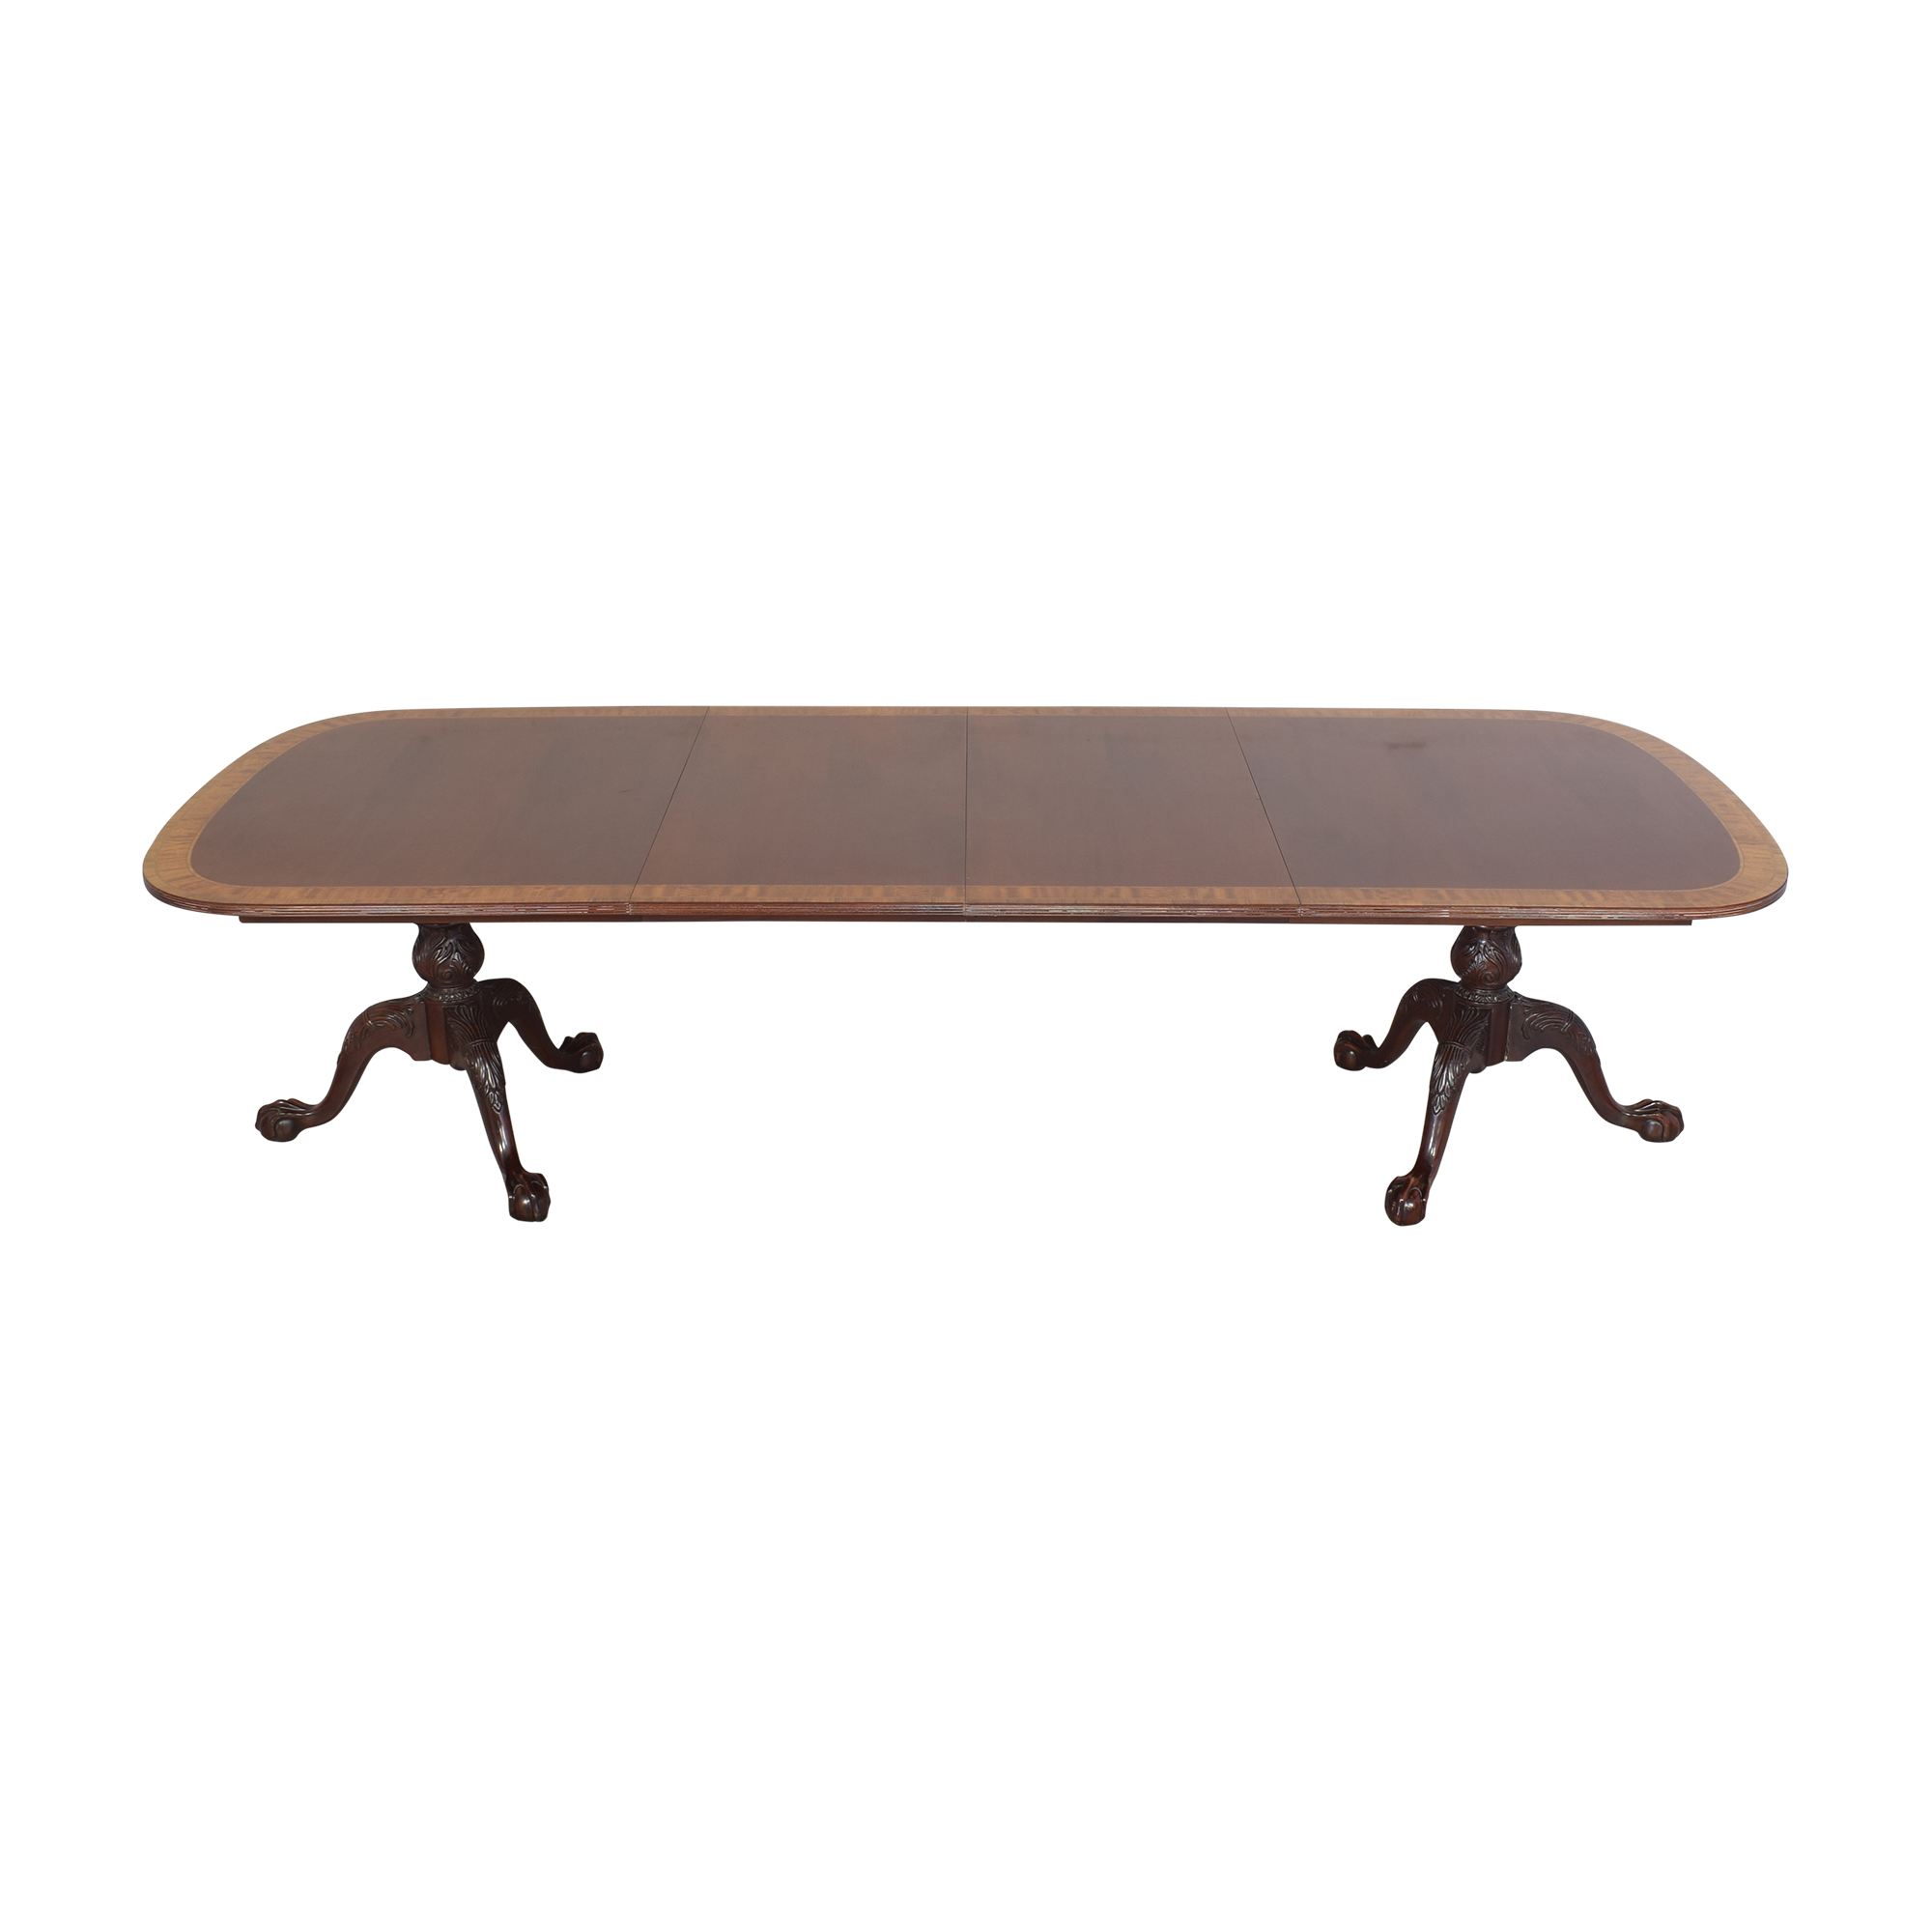 Councill Councill Double Pedestal Dining Table for sale